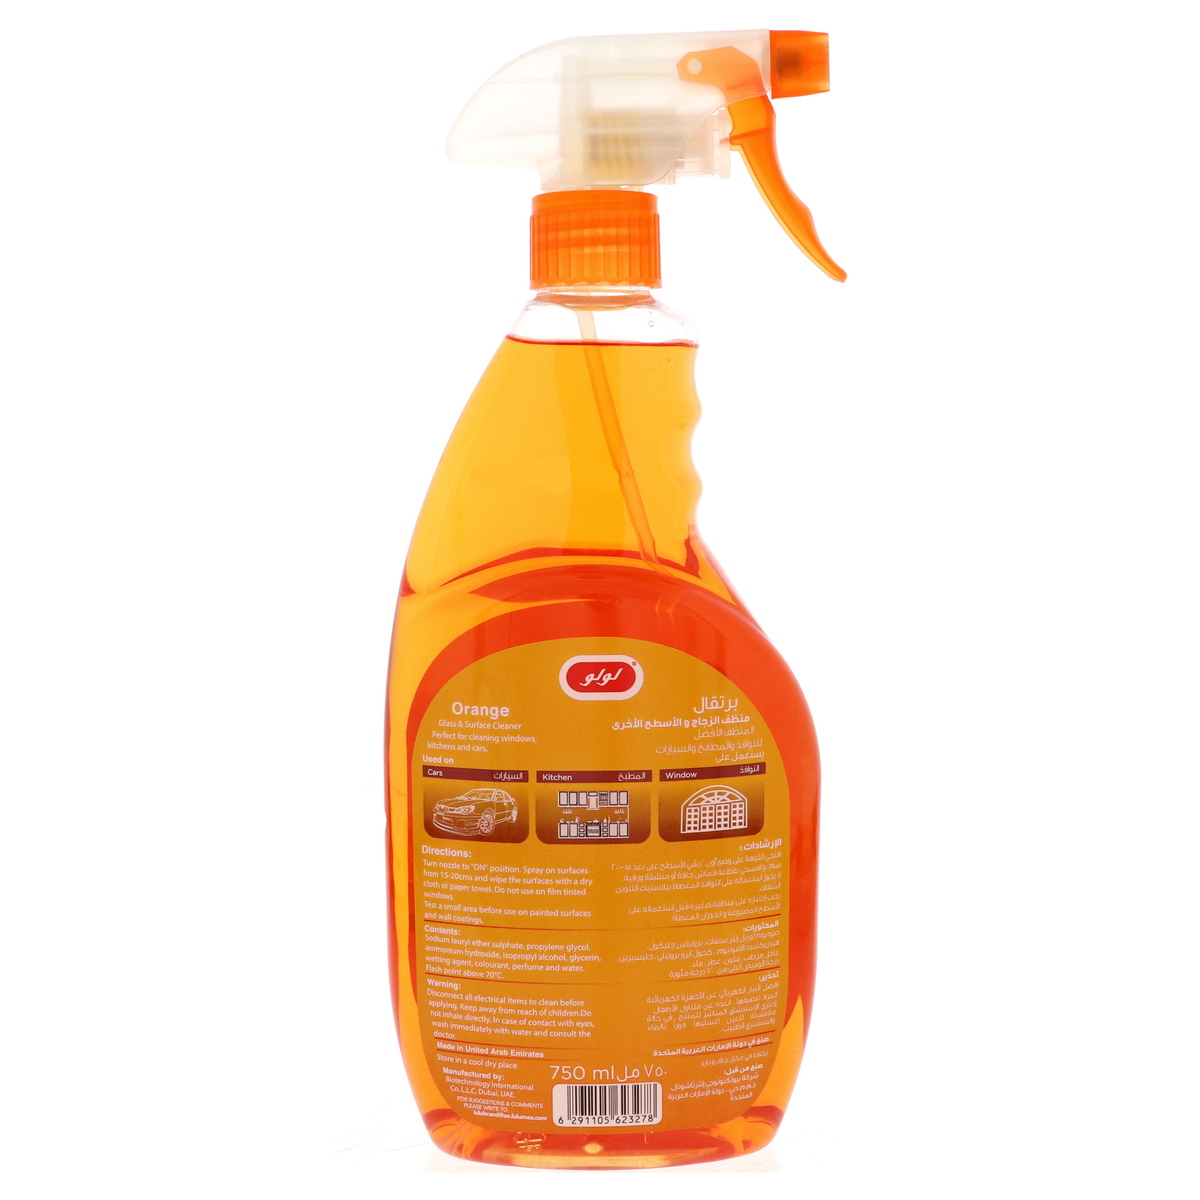 Buy Lulu Glass & Surface Cleaner Orange 750ml - Lulu